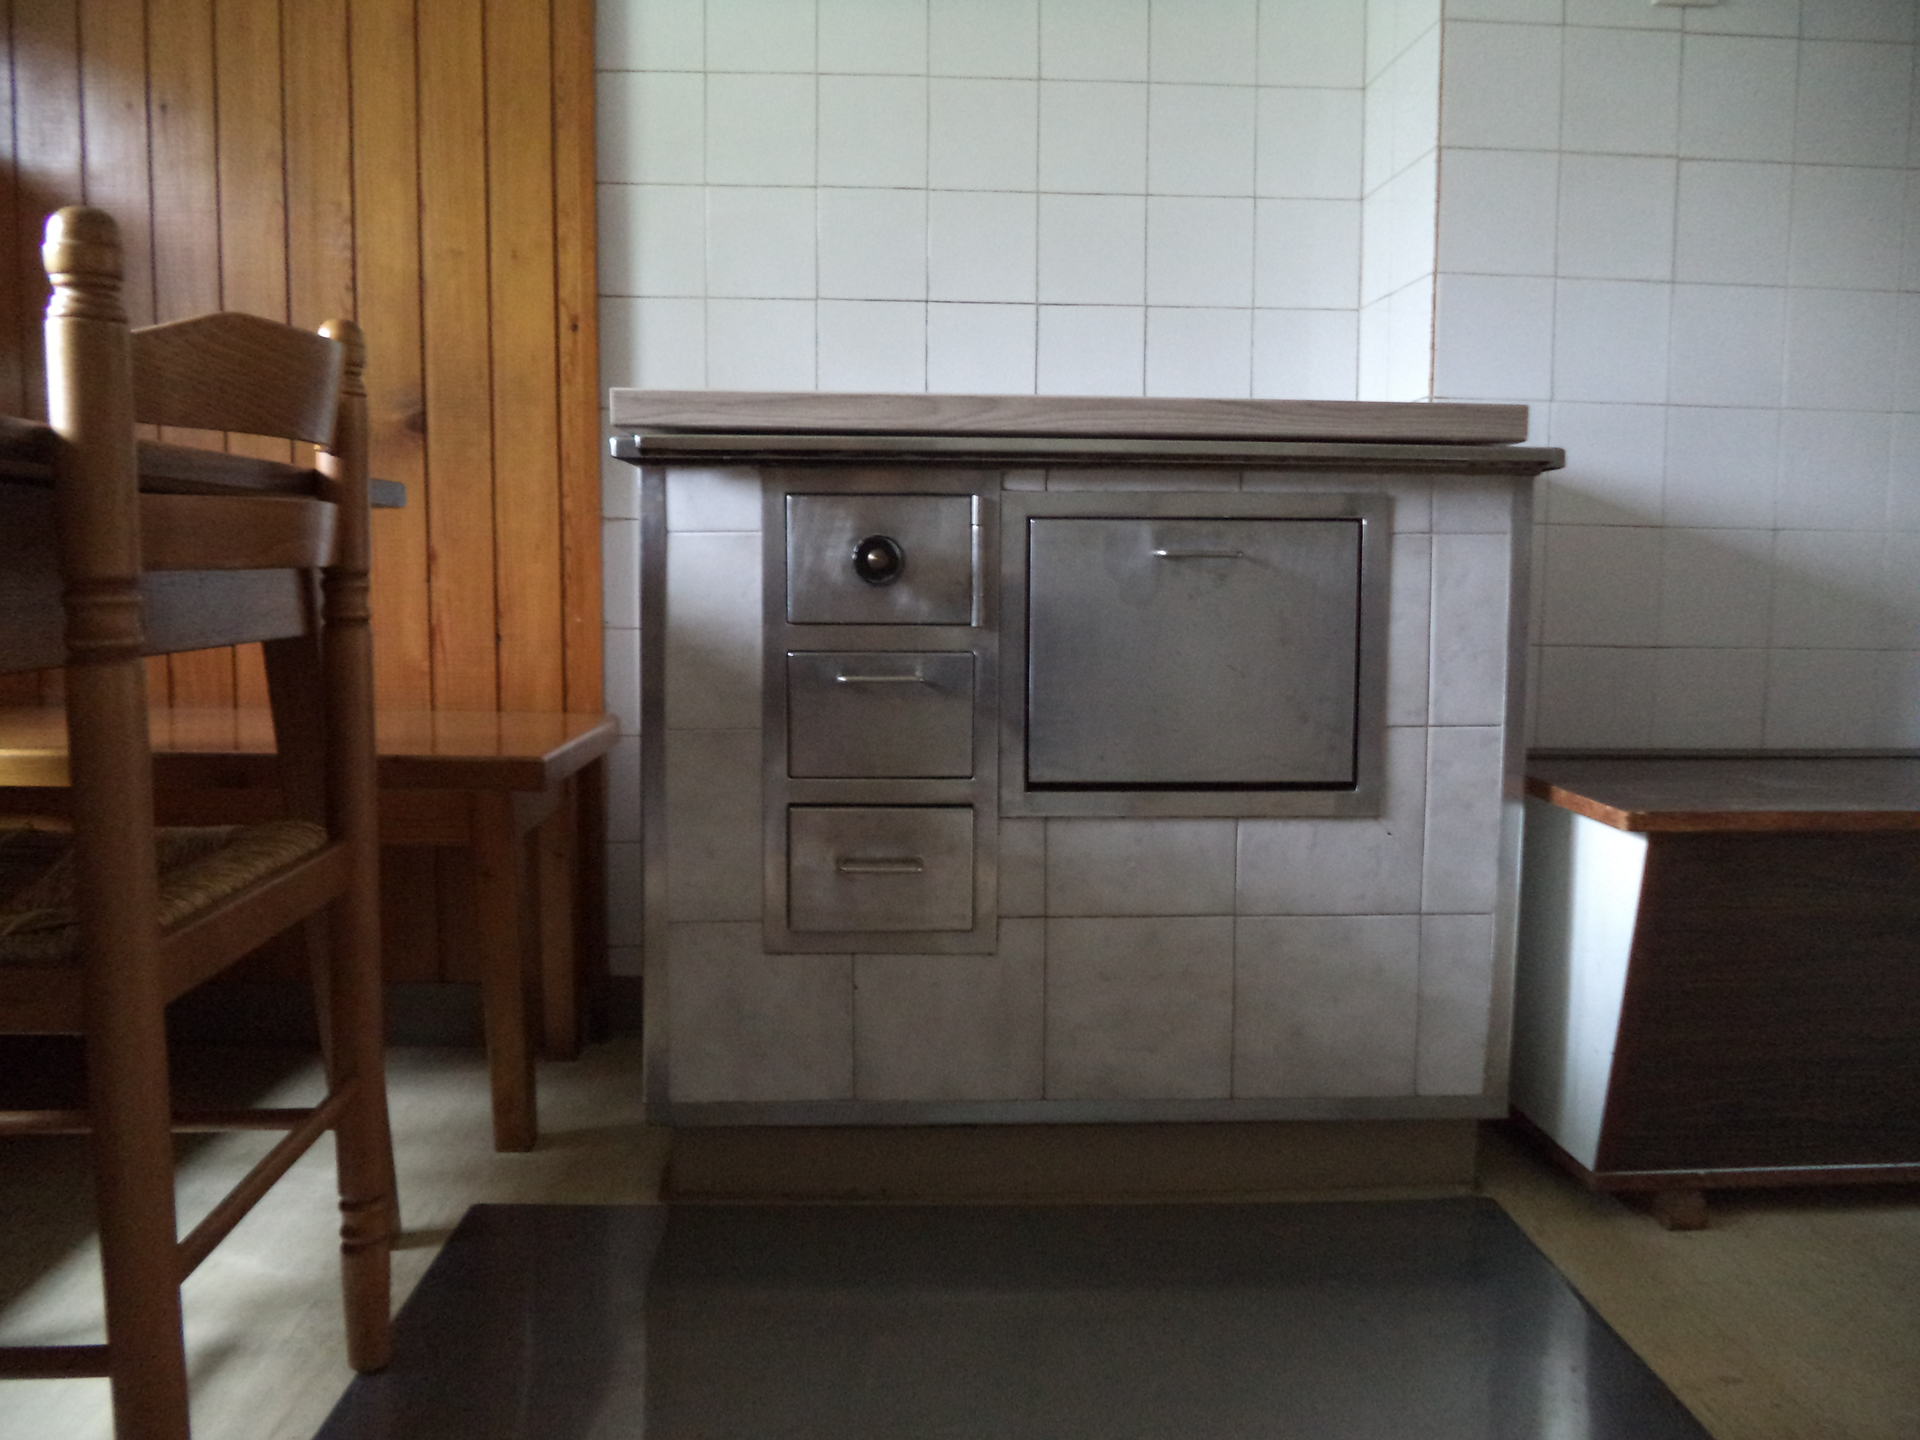 The old stove in the kitchen will heat the place up during winter time. Never fear, there is a regular stove for cooking as well (rustic apartment).